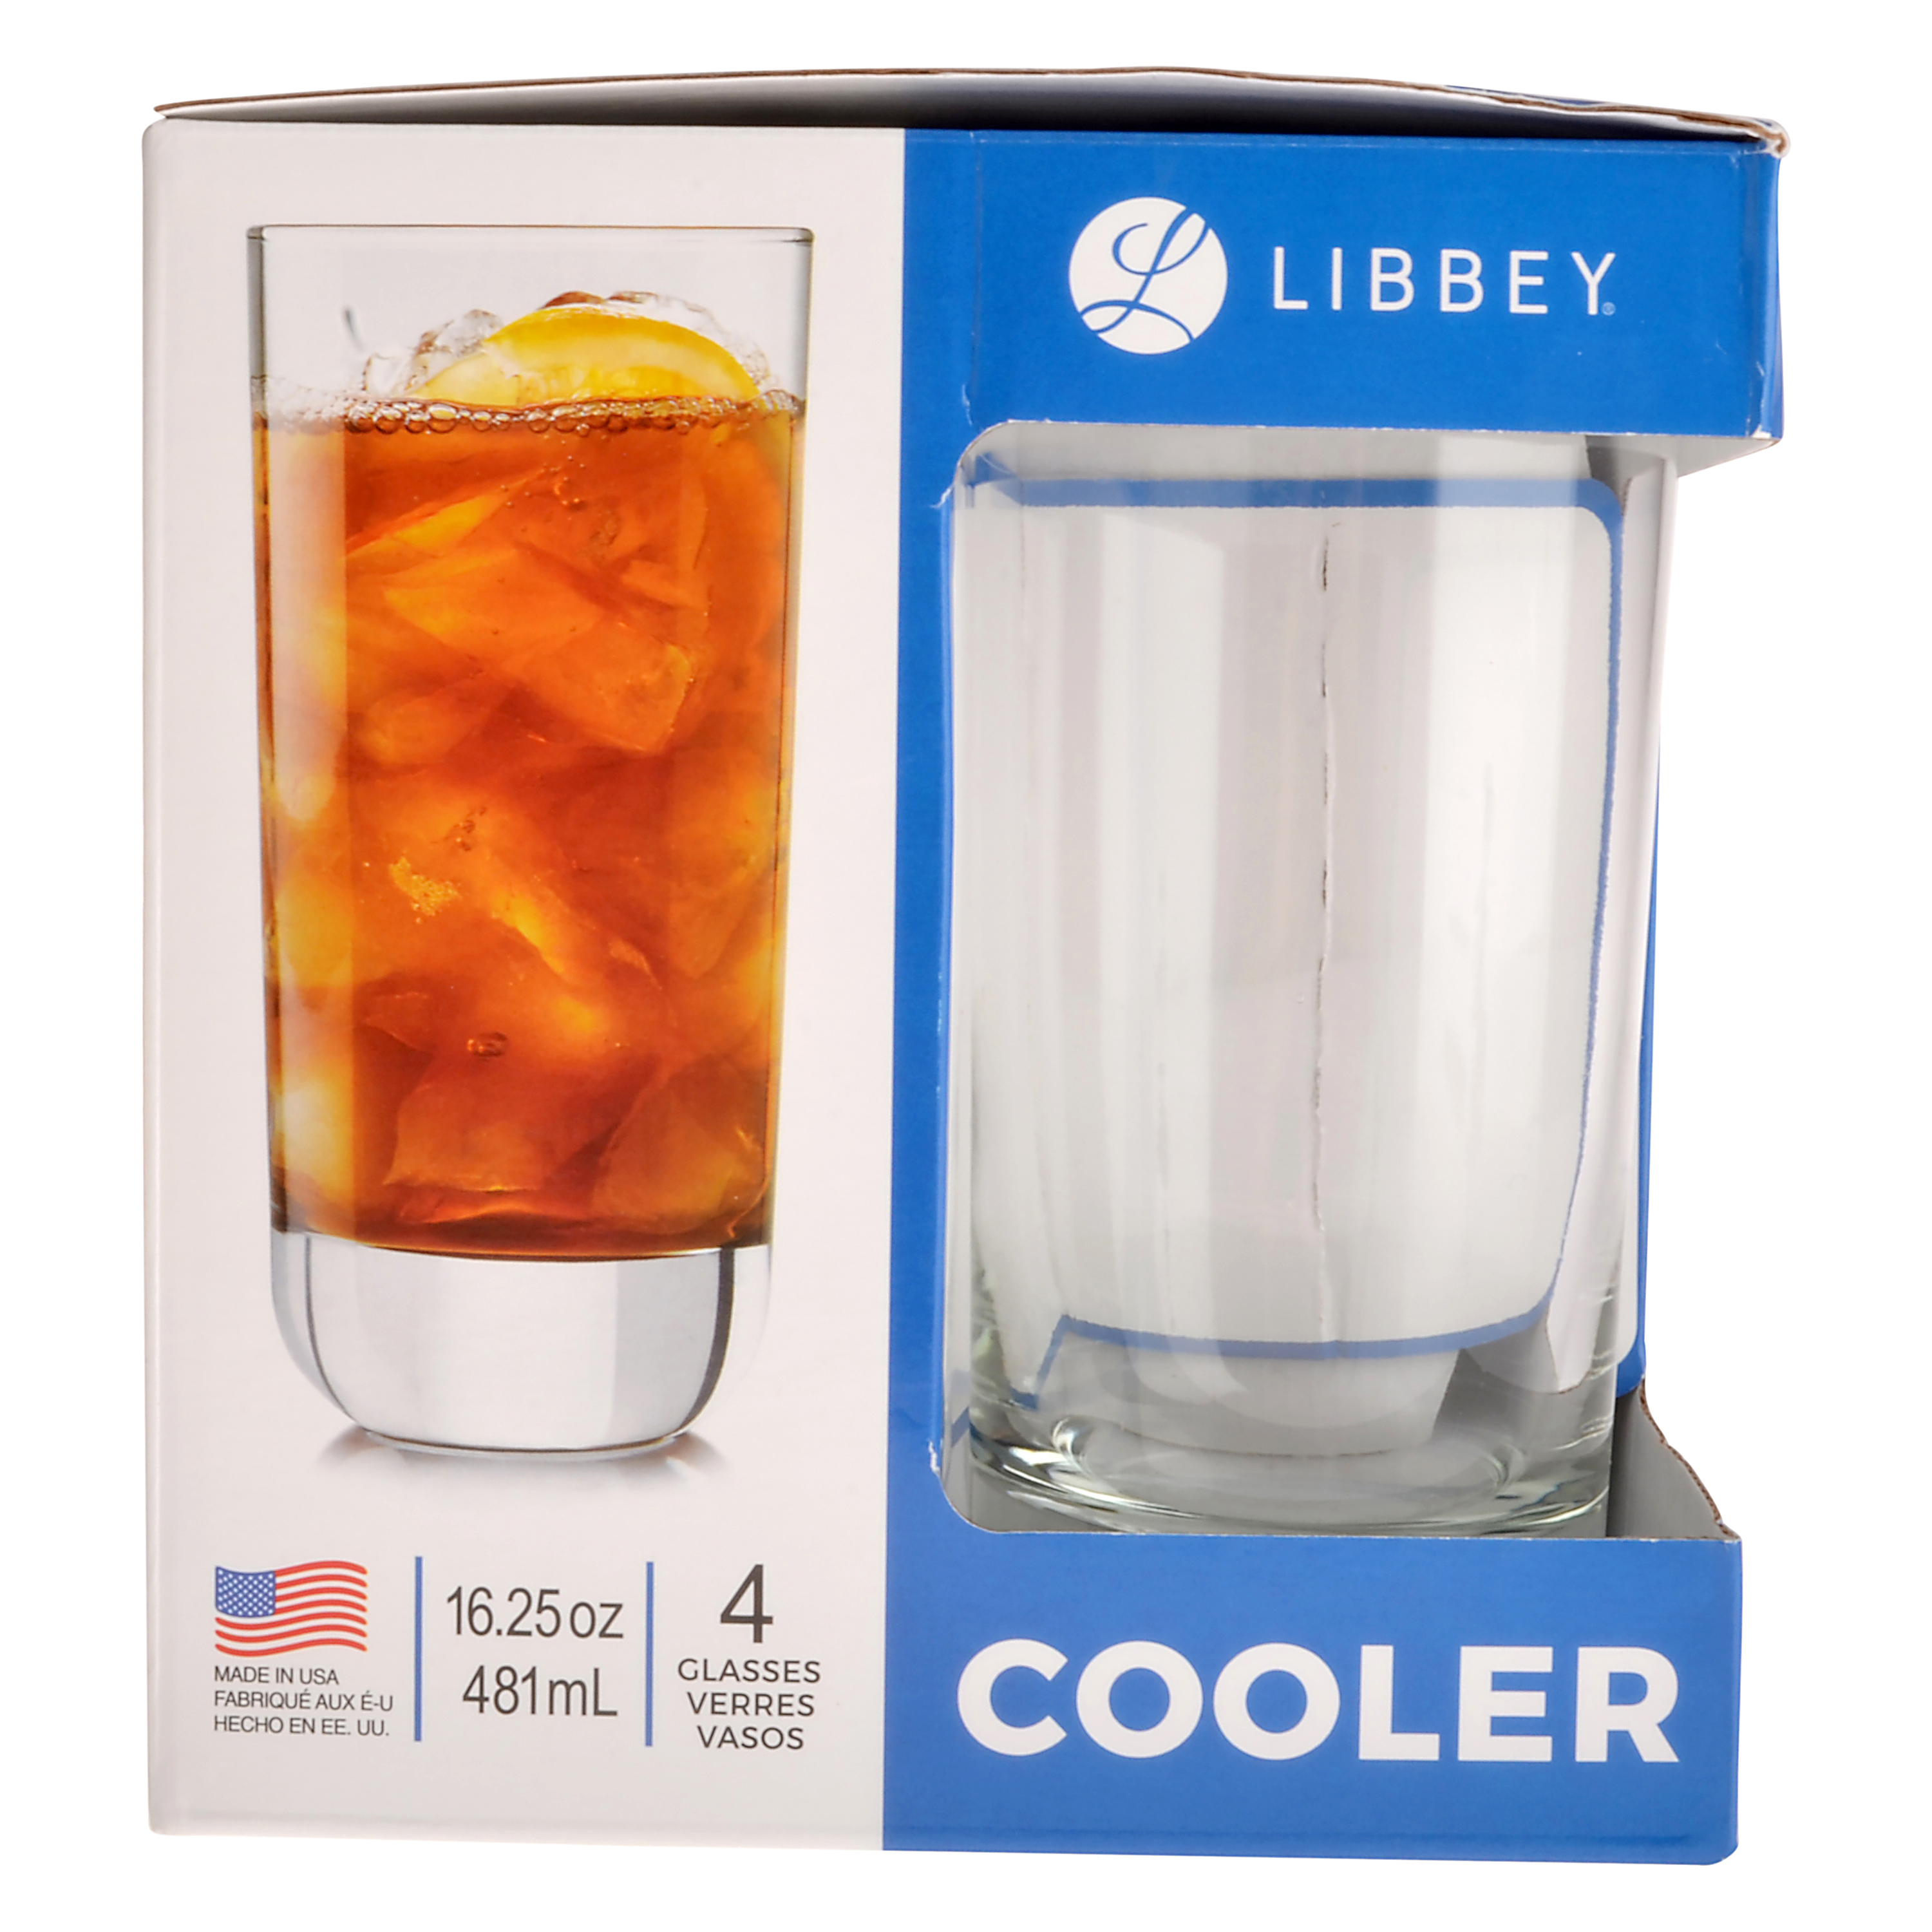 Libbey Cooler Glasses 4 pack by Libbey Glass Inc.